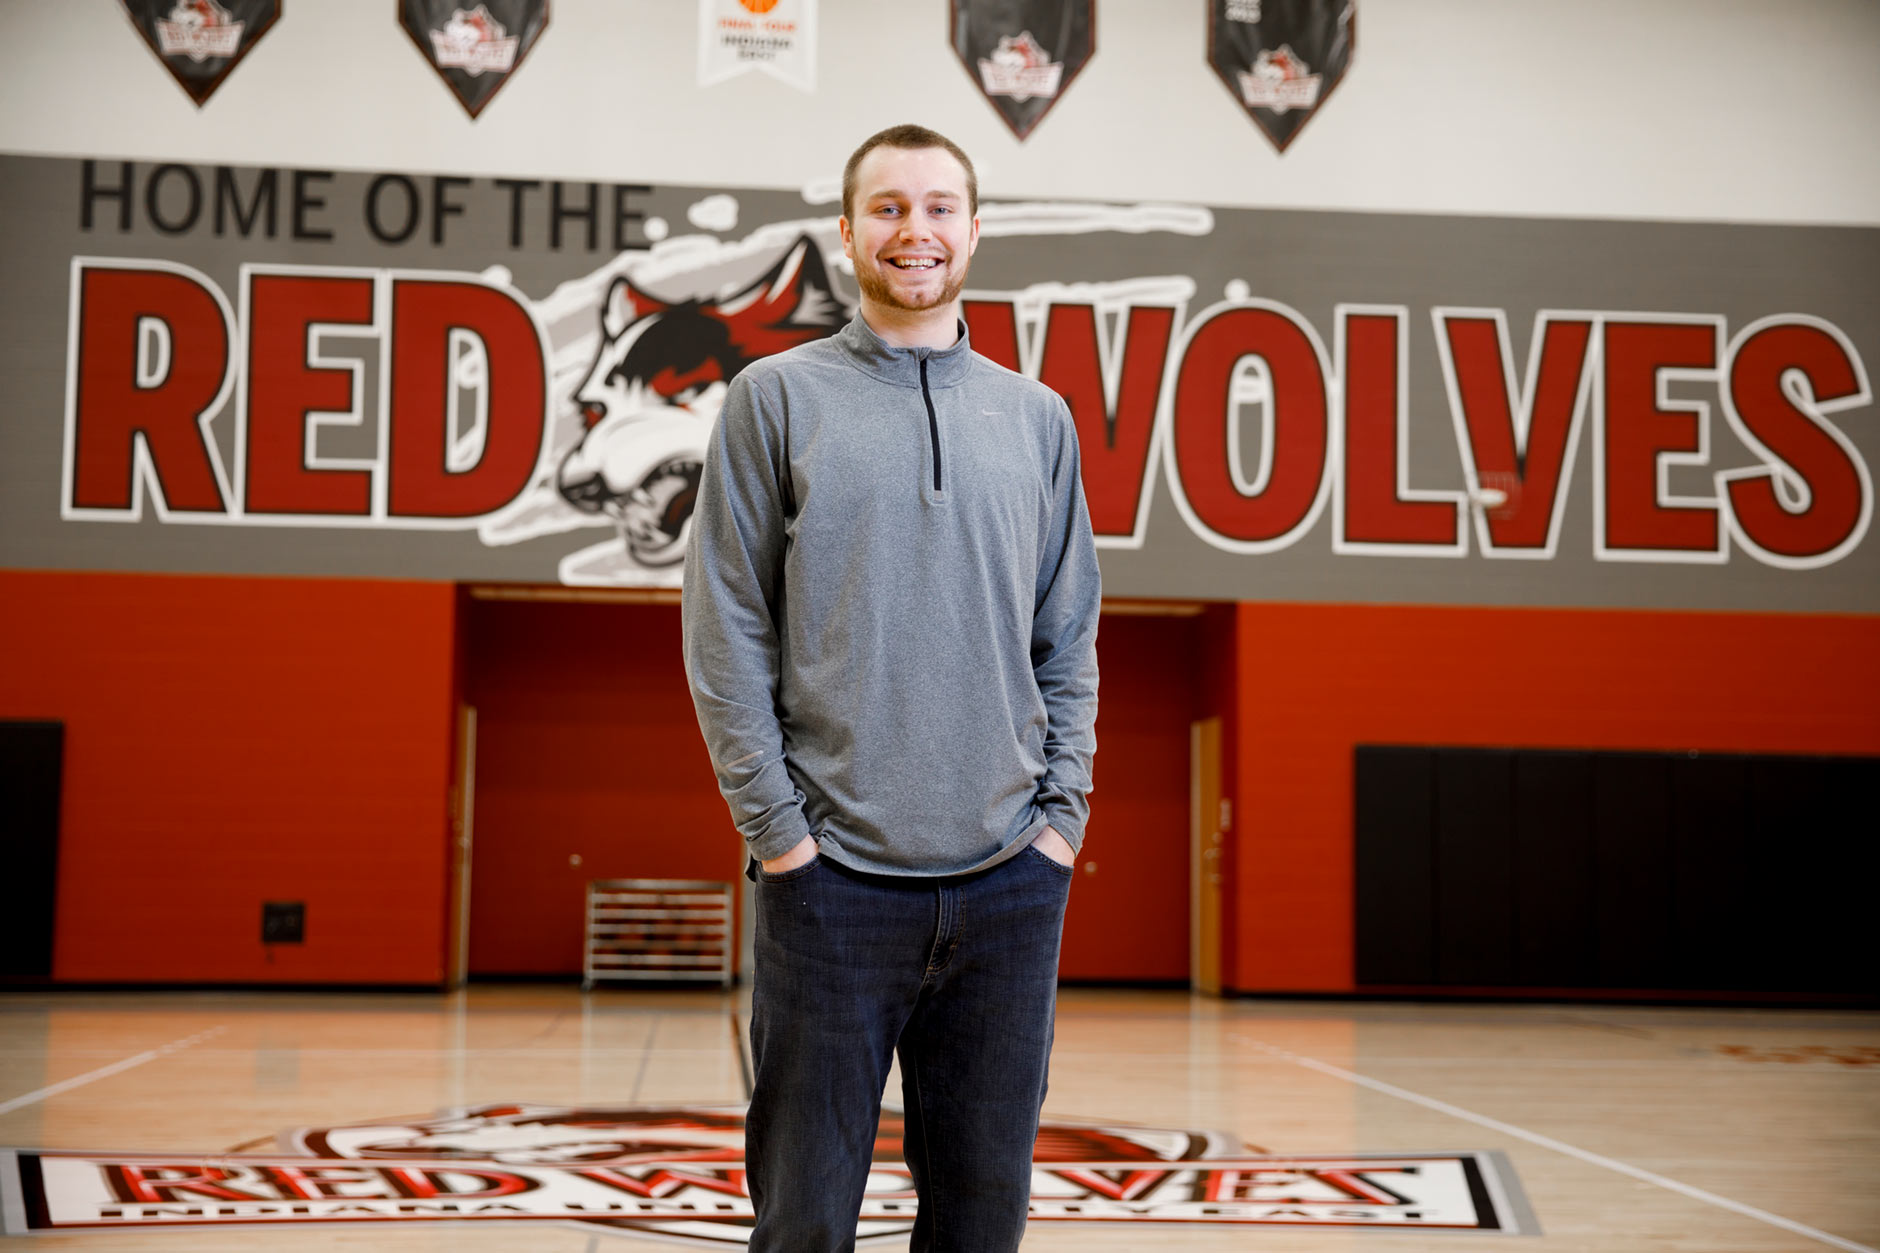 Lucas Huffman, a graduating senior at IU East, poses for a portrait on the court at the campus' Student Activity Center in Richmond on Friday, April 6, 2018. (James Brosher/IU Communications)